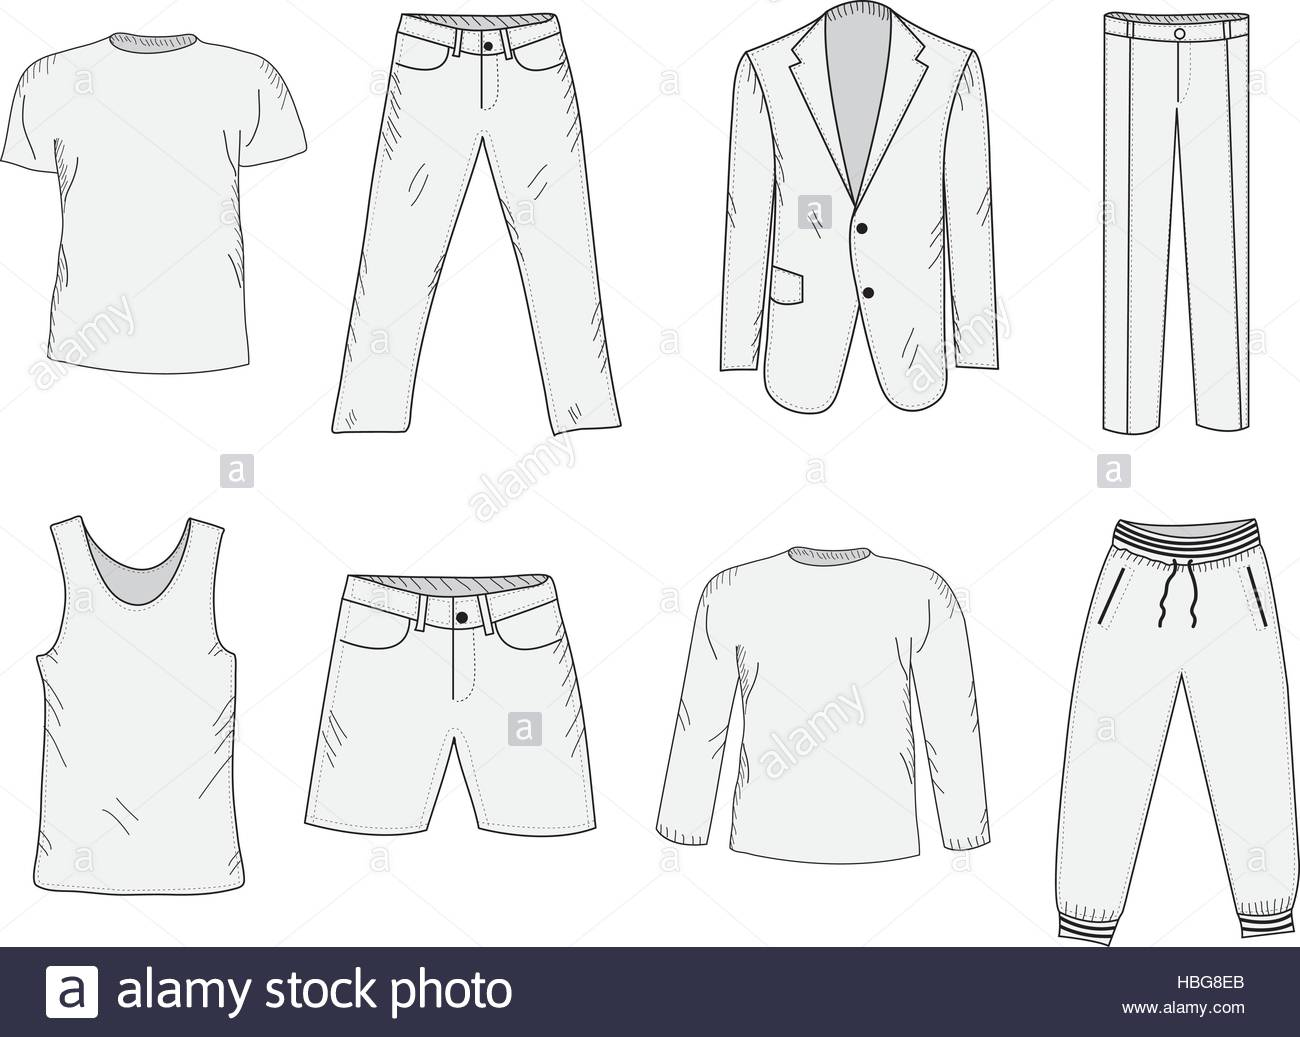 1300x1037 Clothing Set Sketch. Men's Clothes, Hand Drawing Style. Business